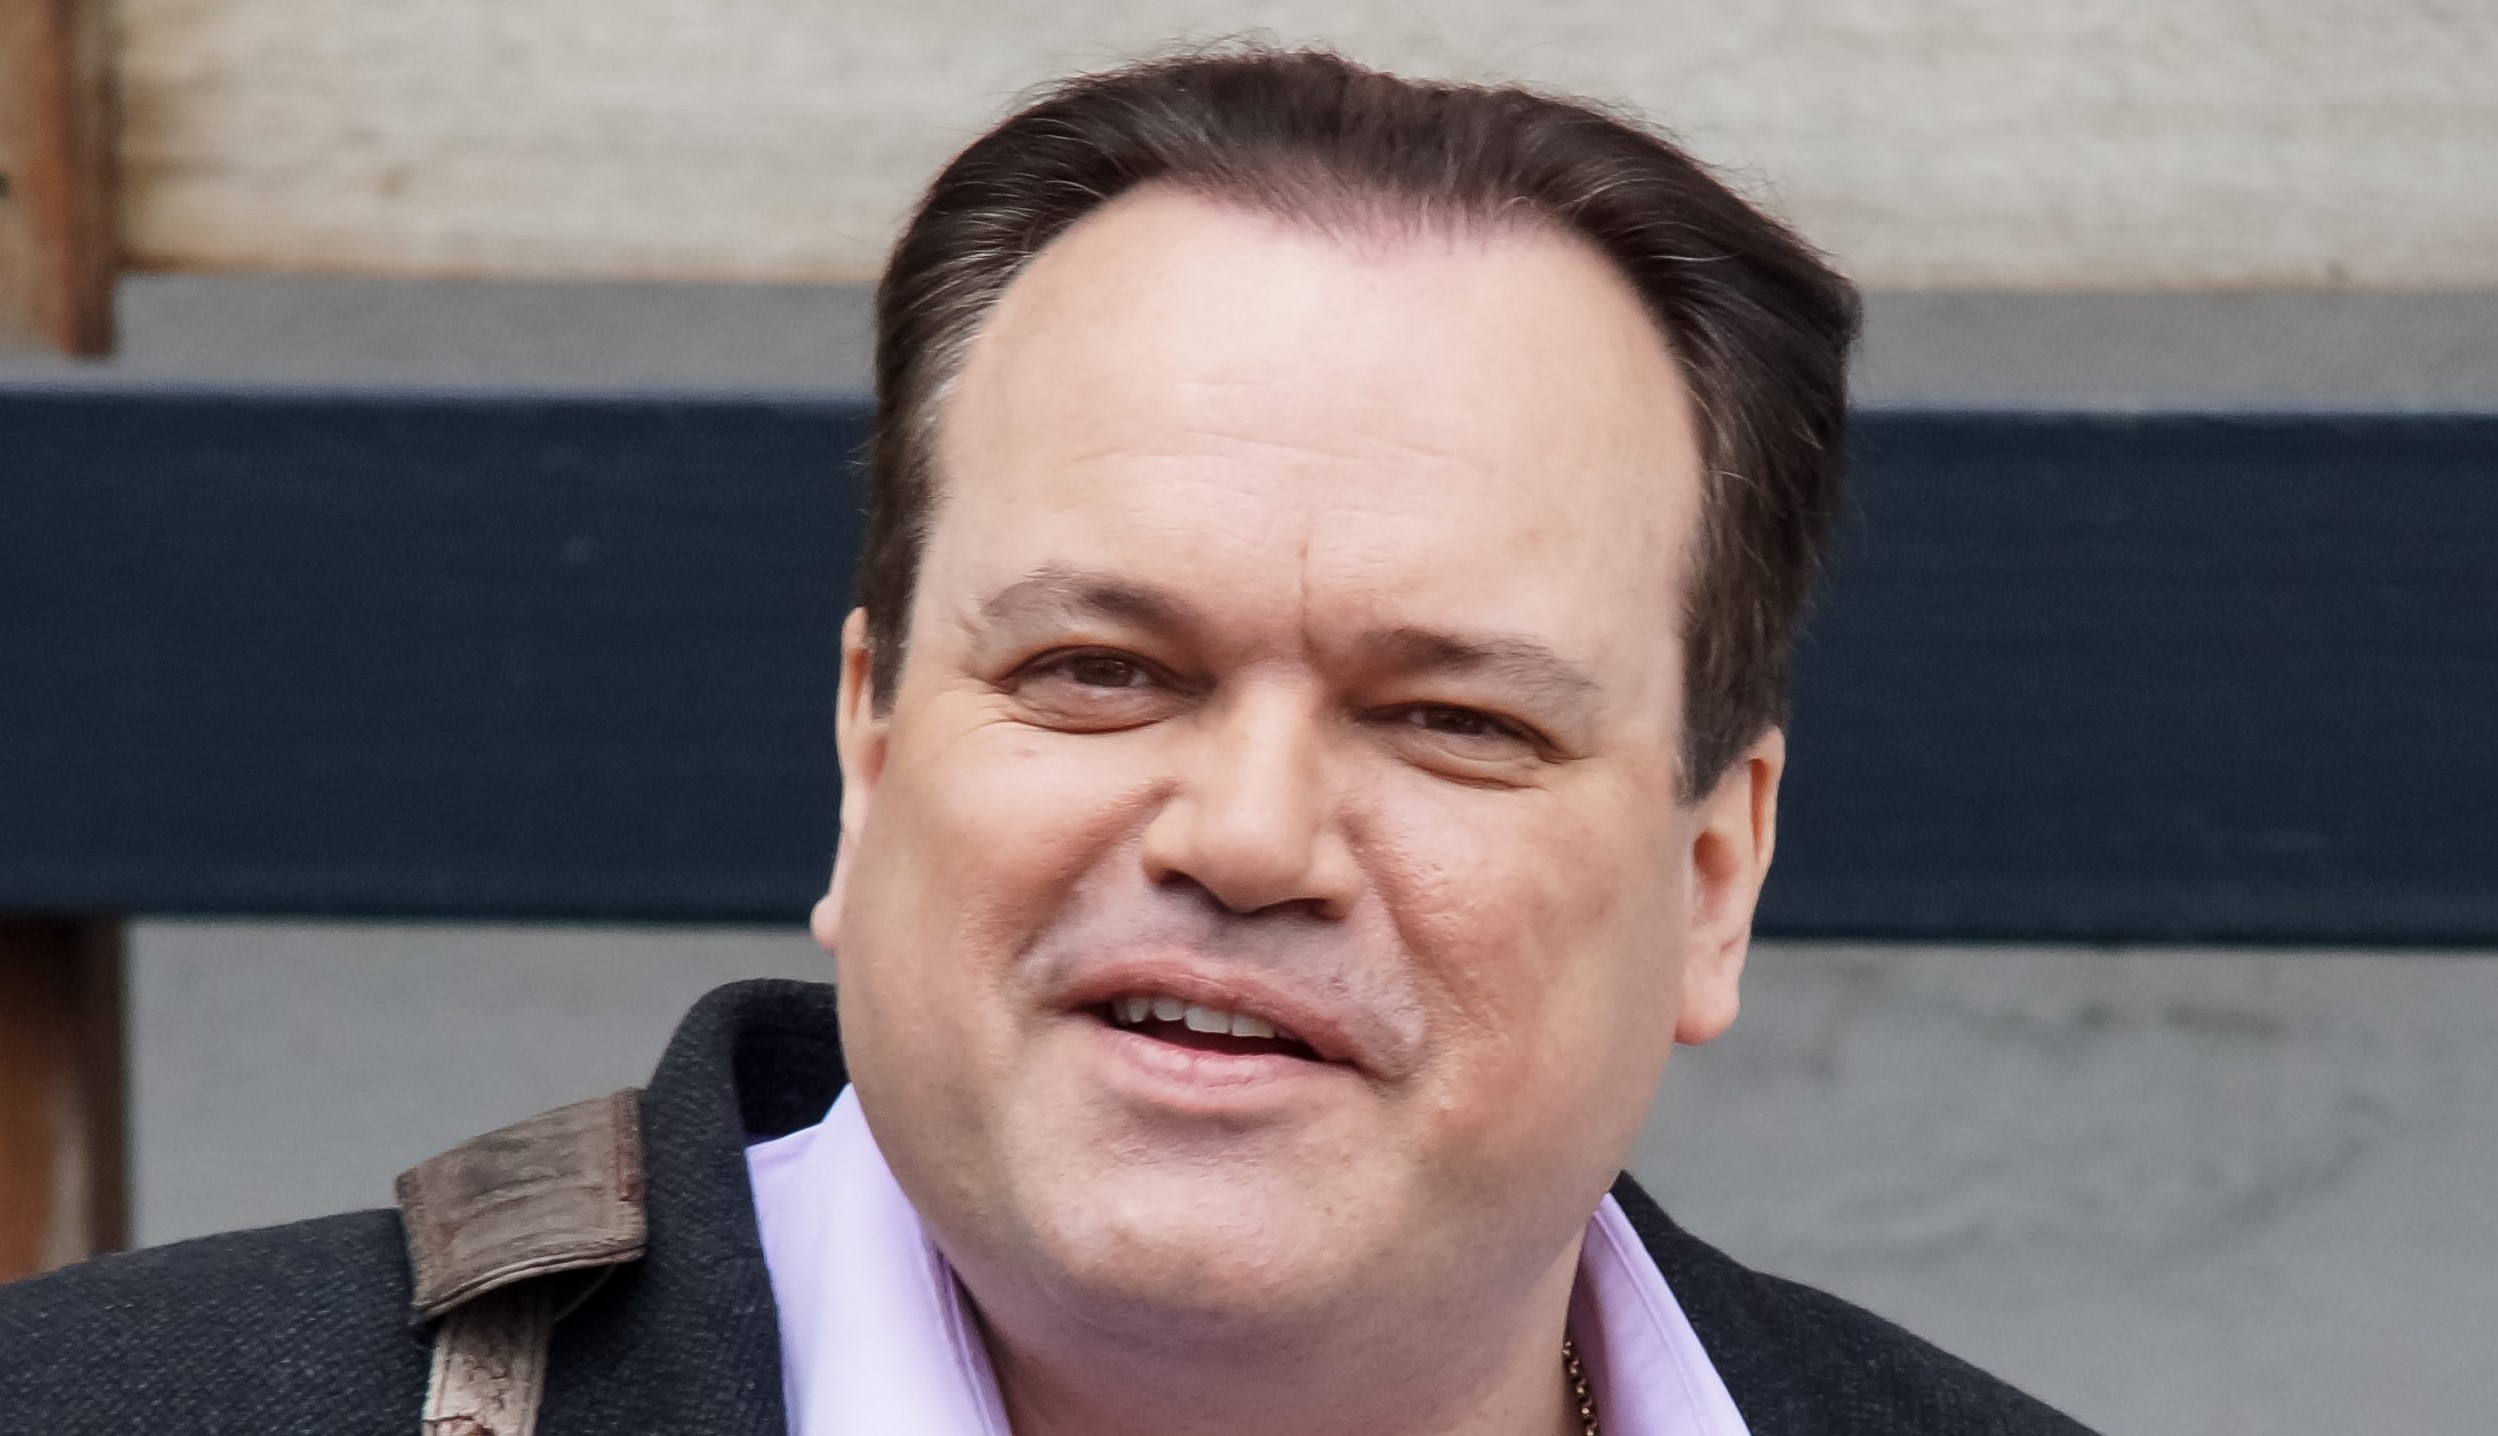 EastEnders' Shaun Williamson reveals 10lb weight loss